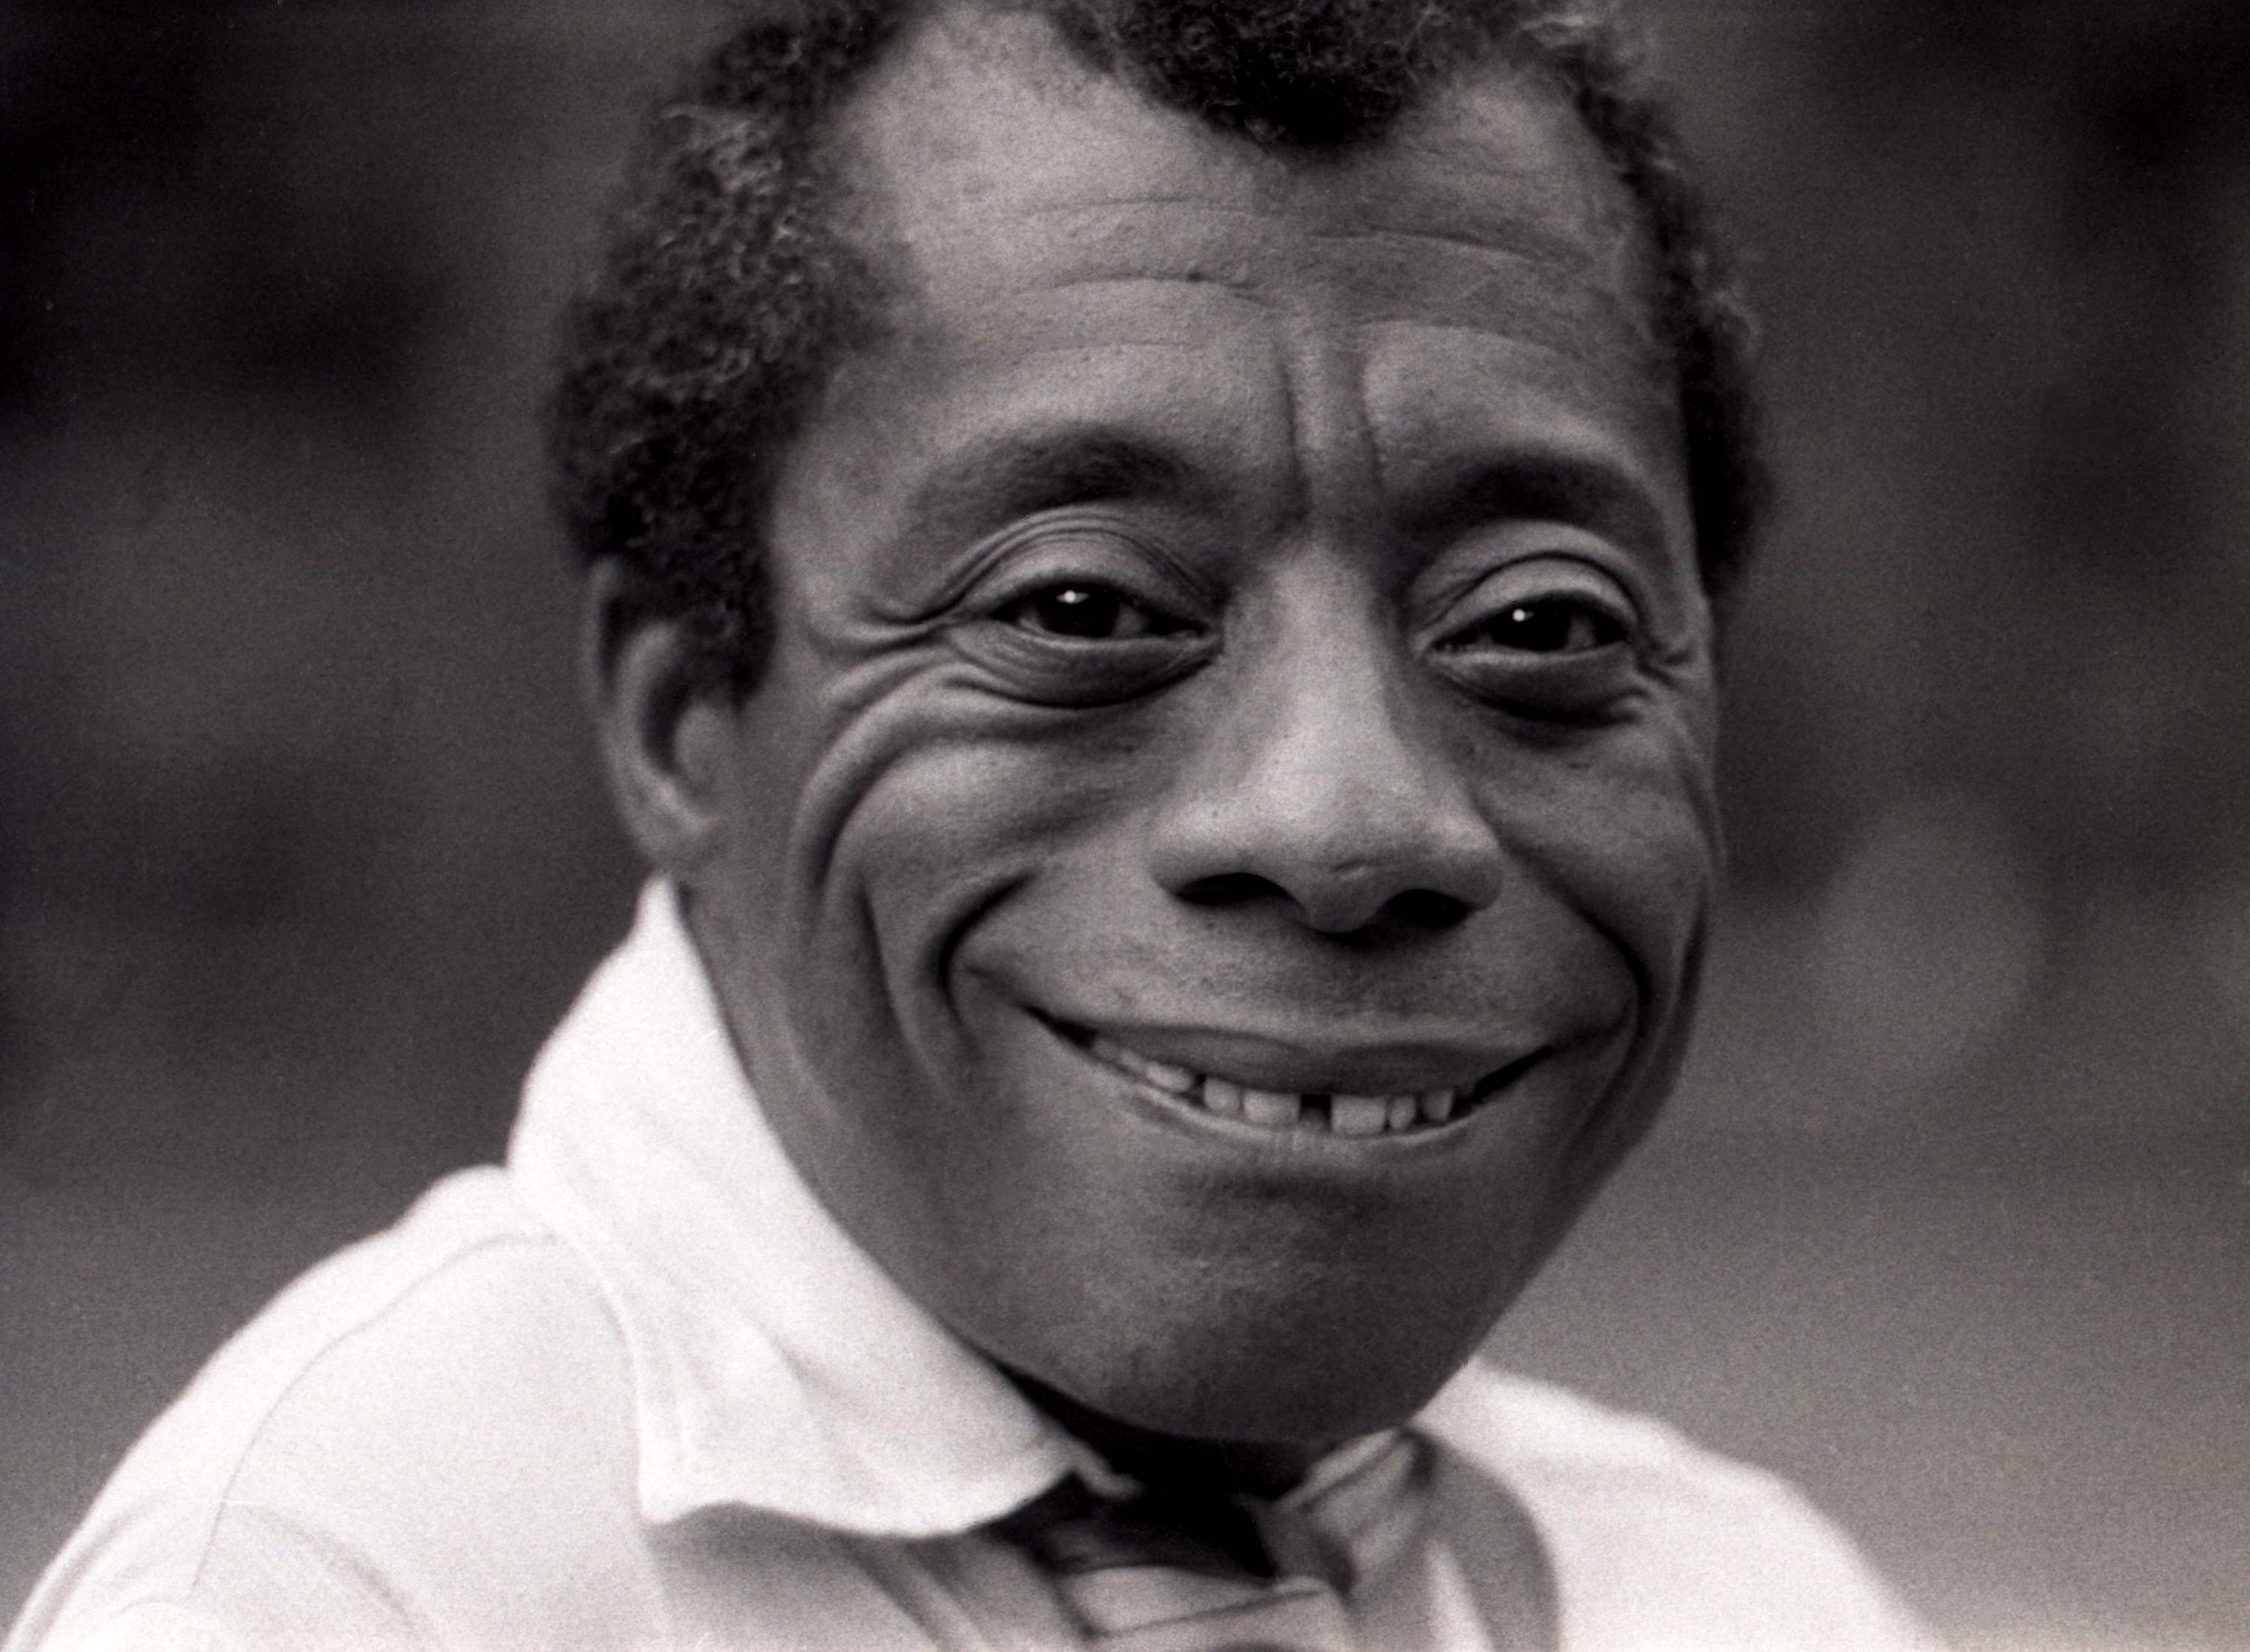 james_baldwin_2_allan_warren.jpg